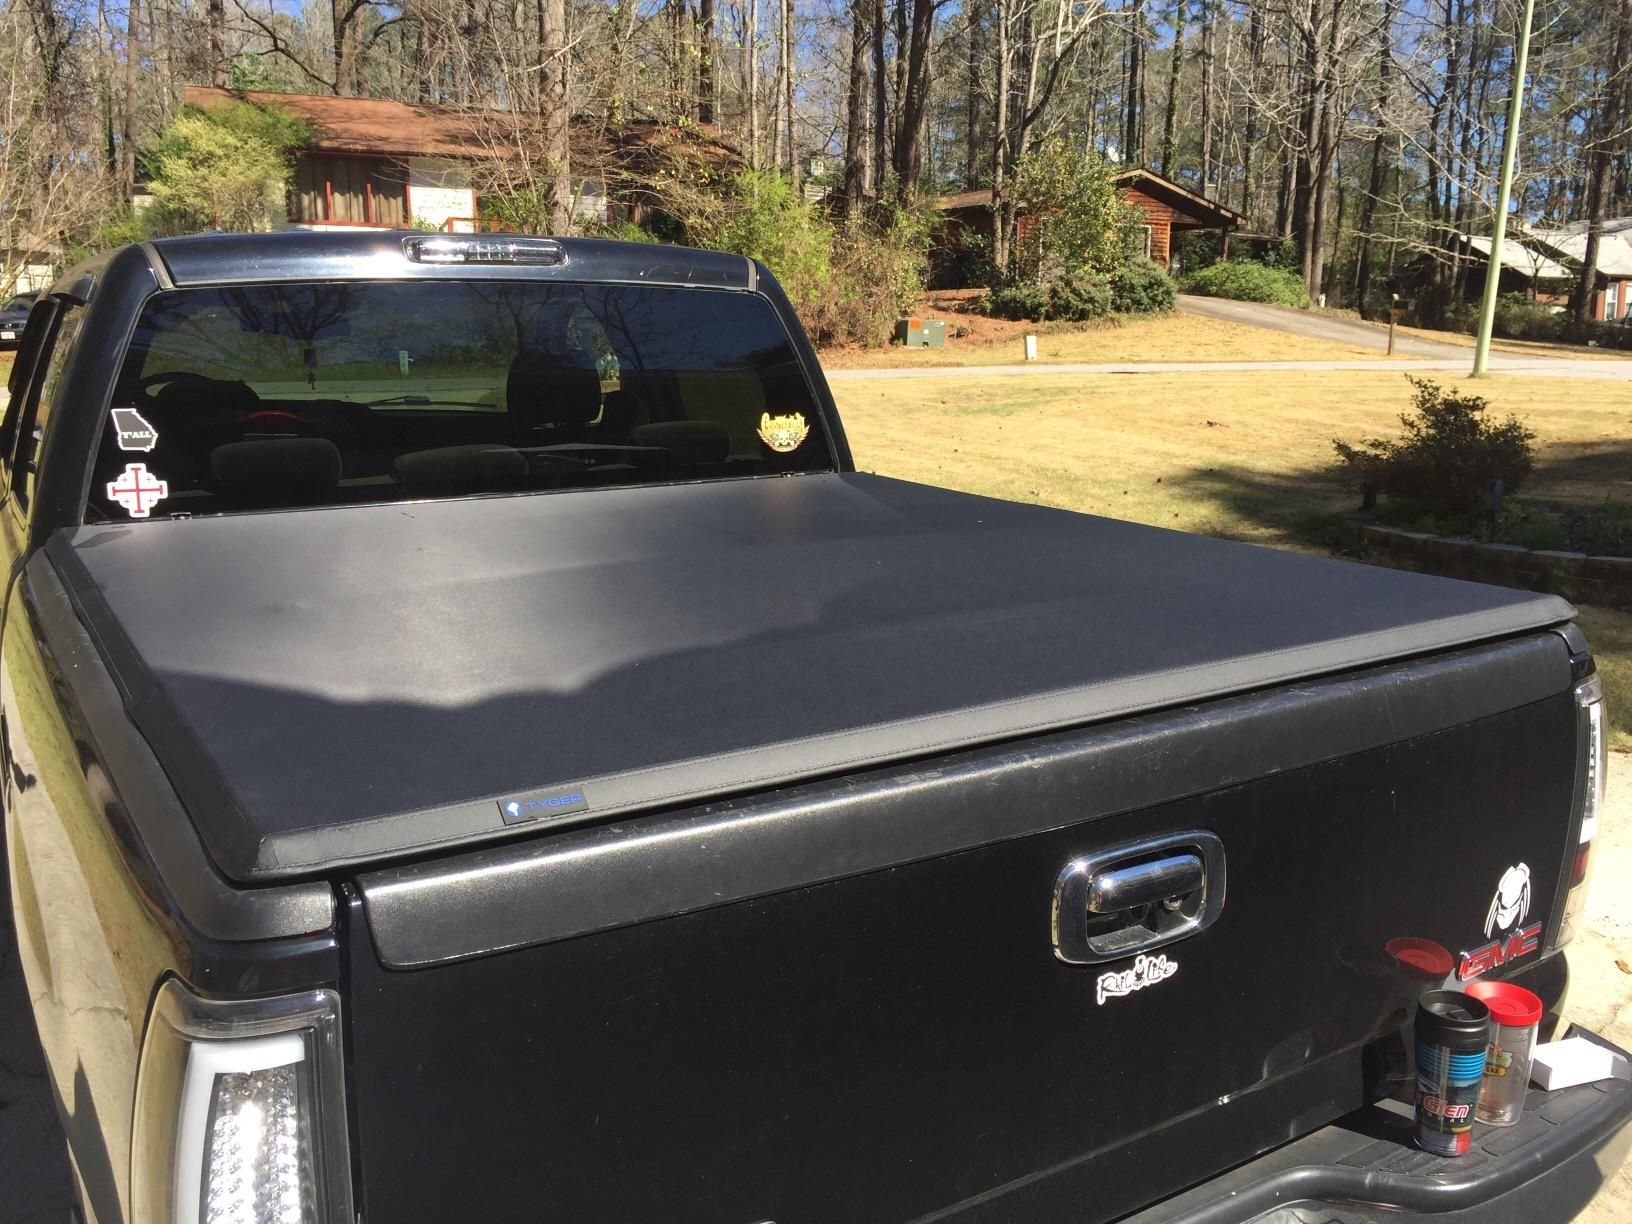 Gmc Sierra 1500 Tonneau Cover 04 06 In 2020 Gmc Sierra 1500